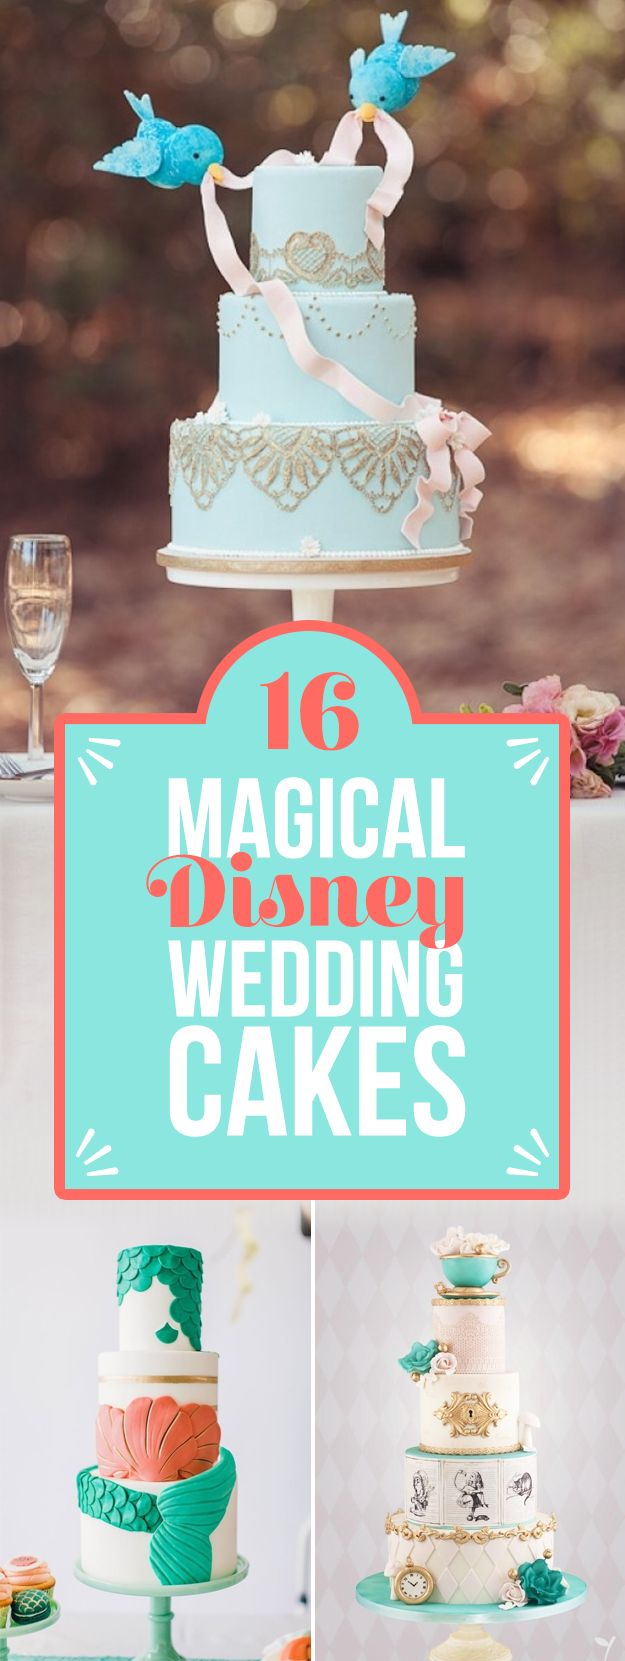 16 Disney Wedding Cakes That'll Make You The Happiest Person On Earth -   .